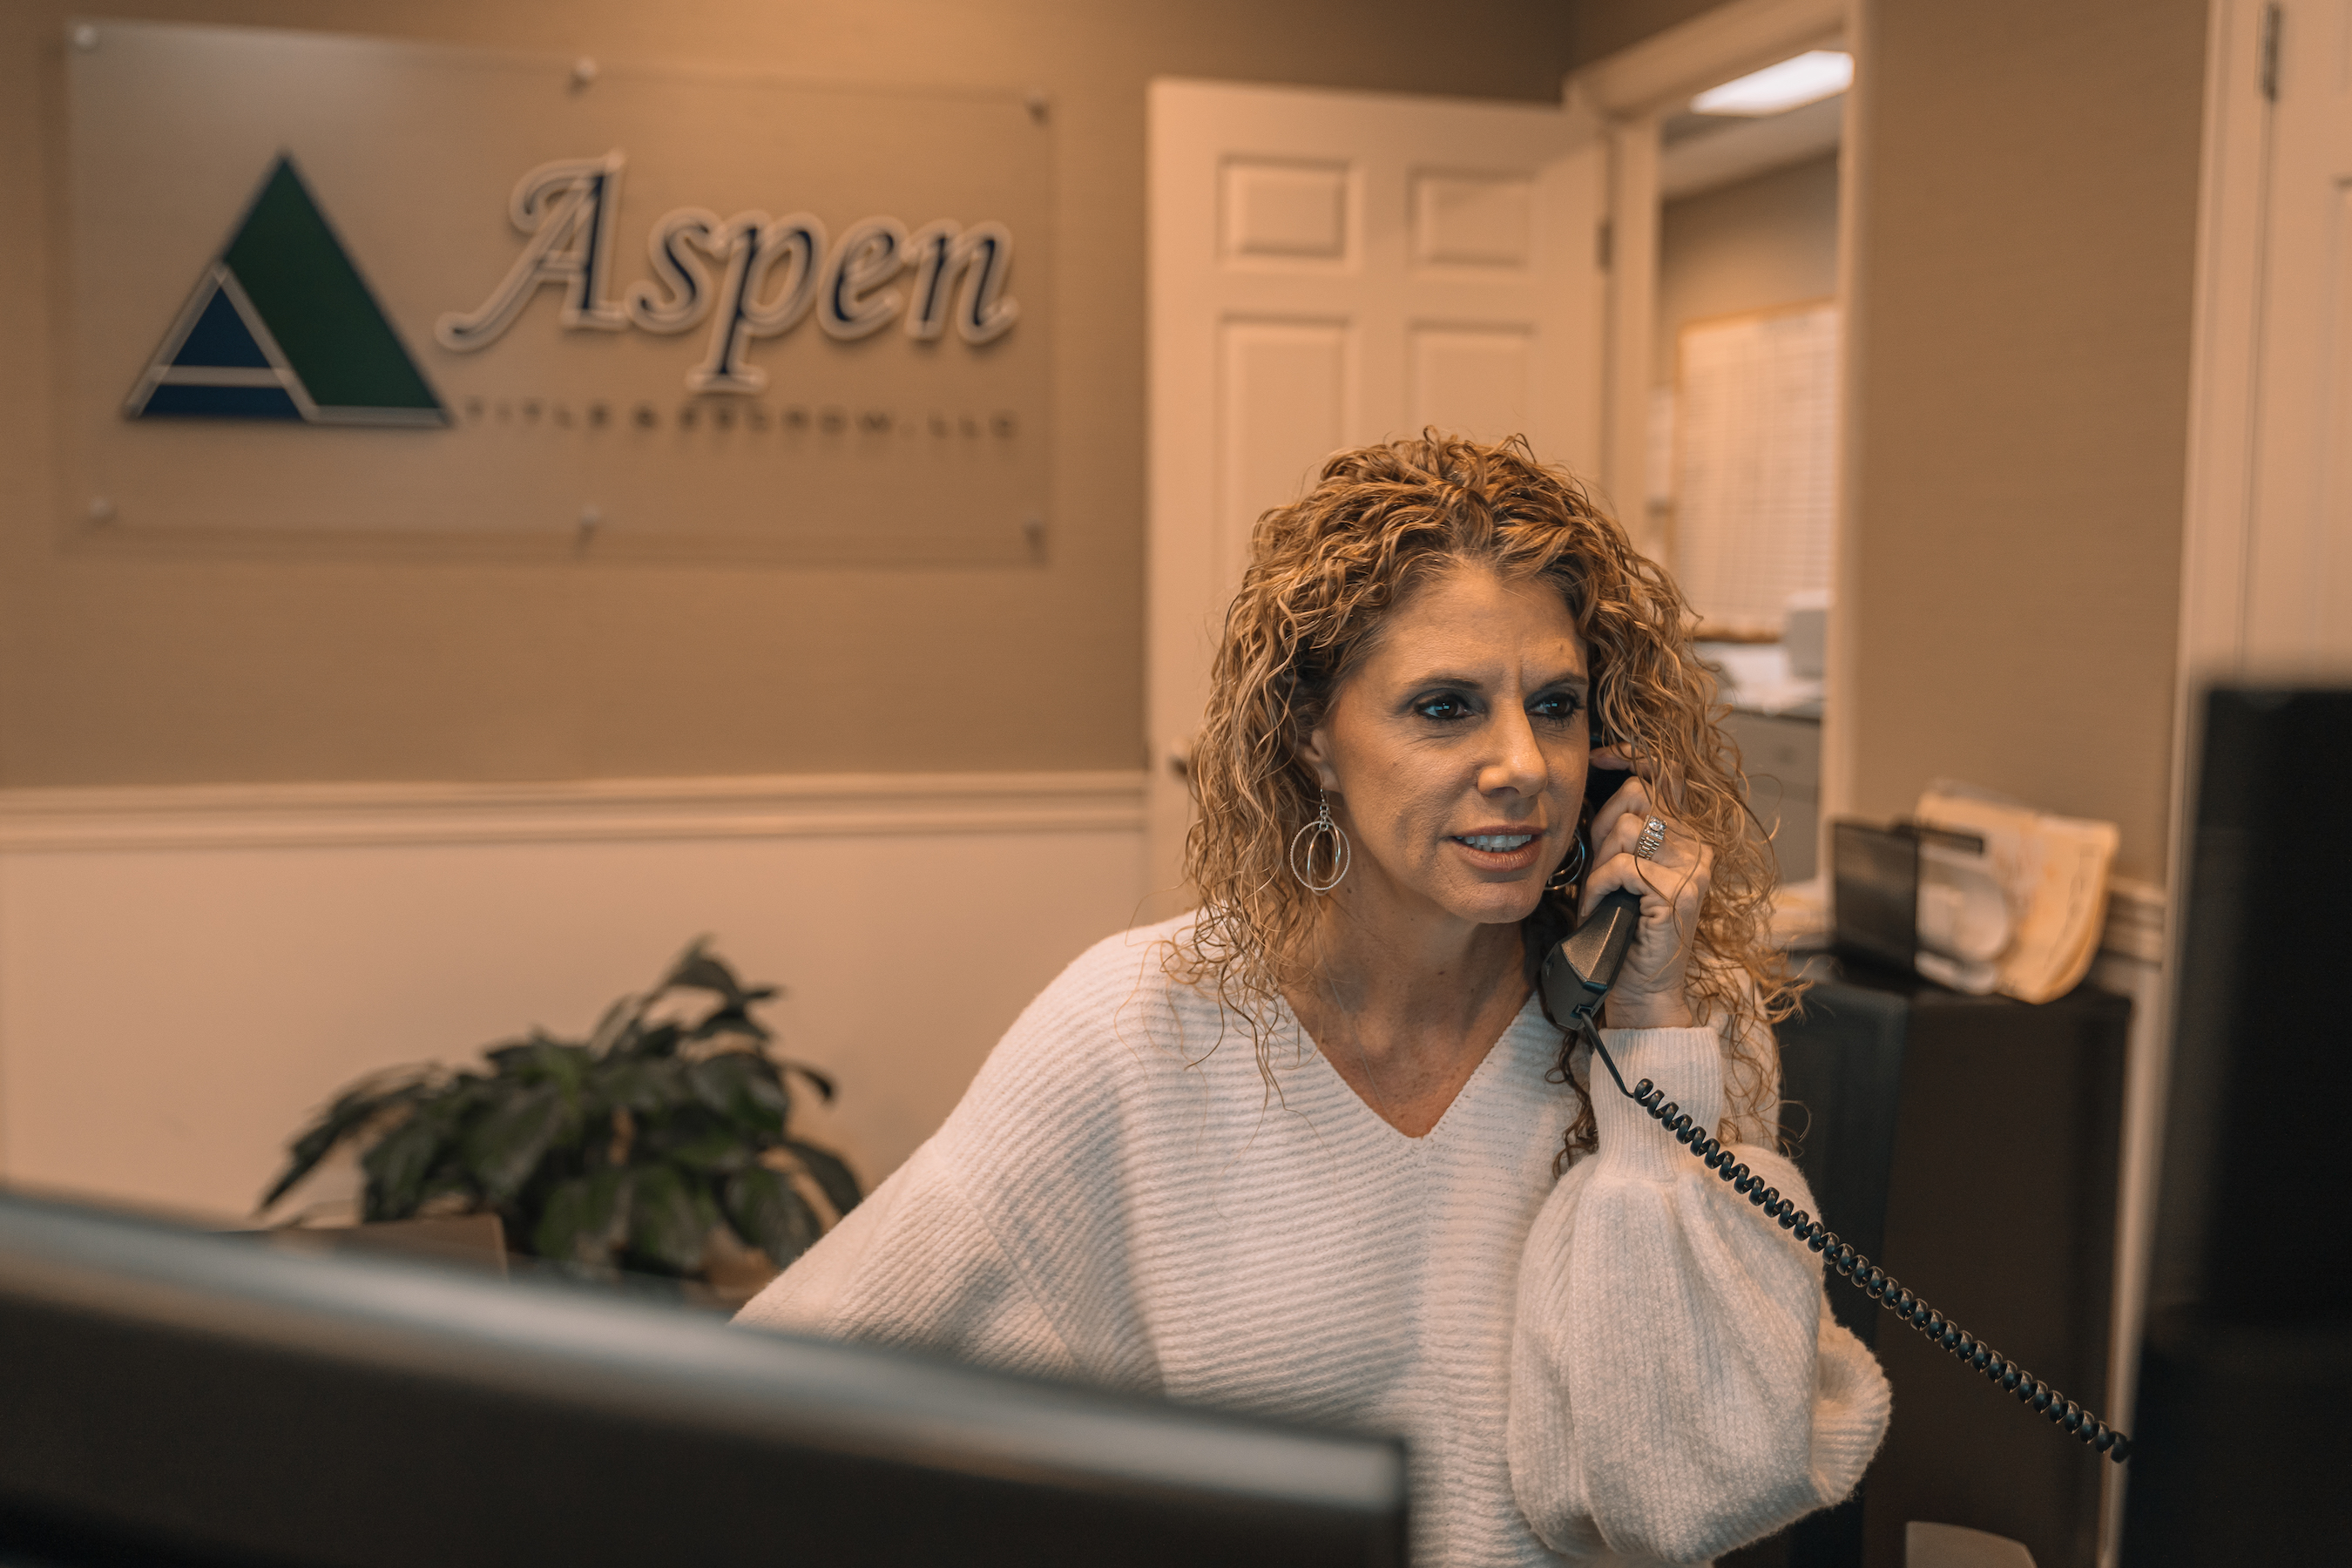 Aspen Title and Escrow employee working at her desk in their knoxville office located in east tennessee